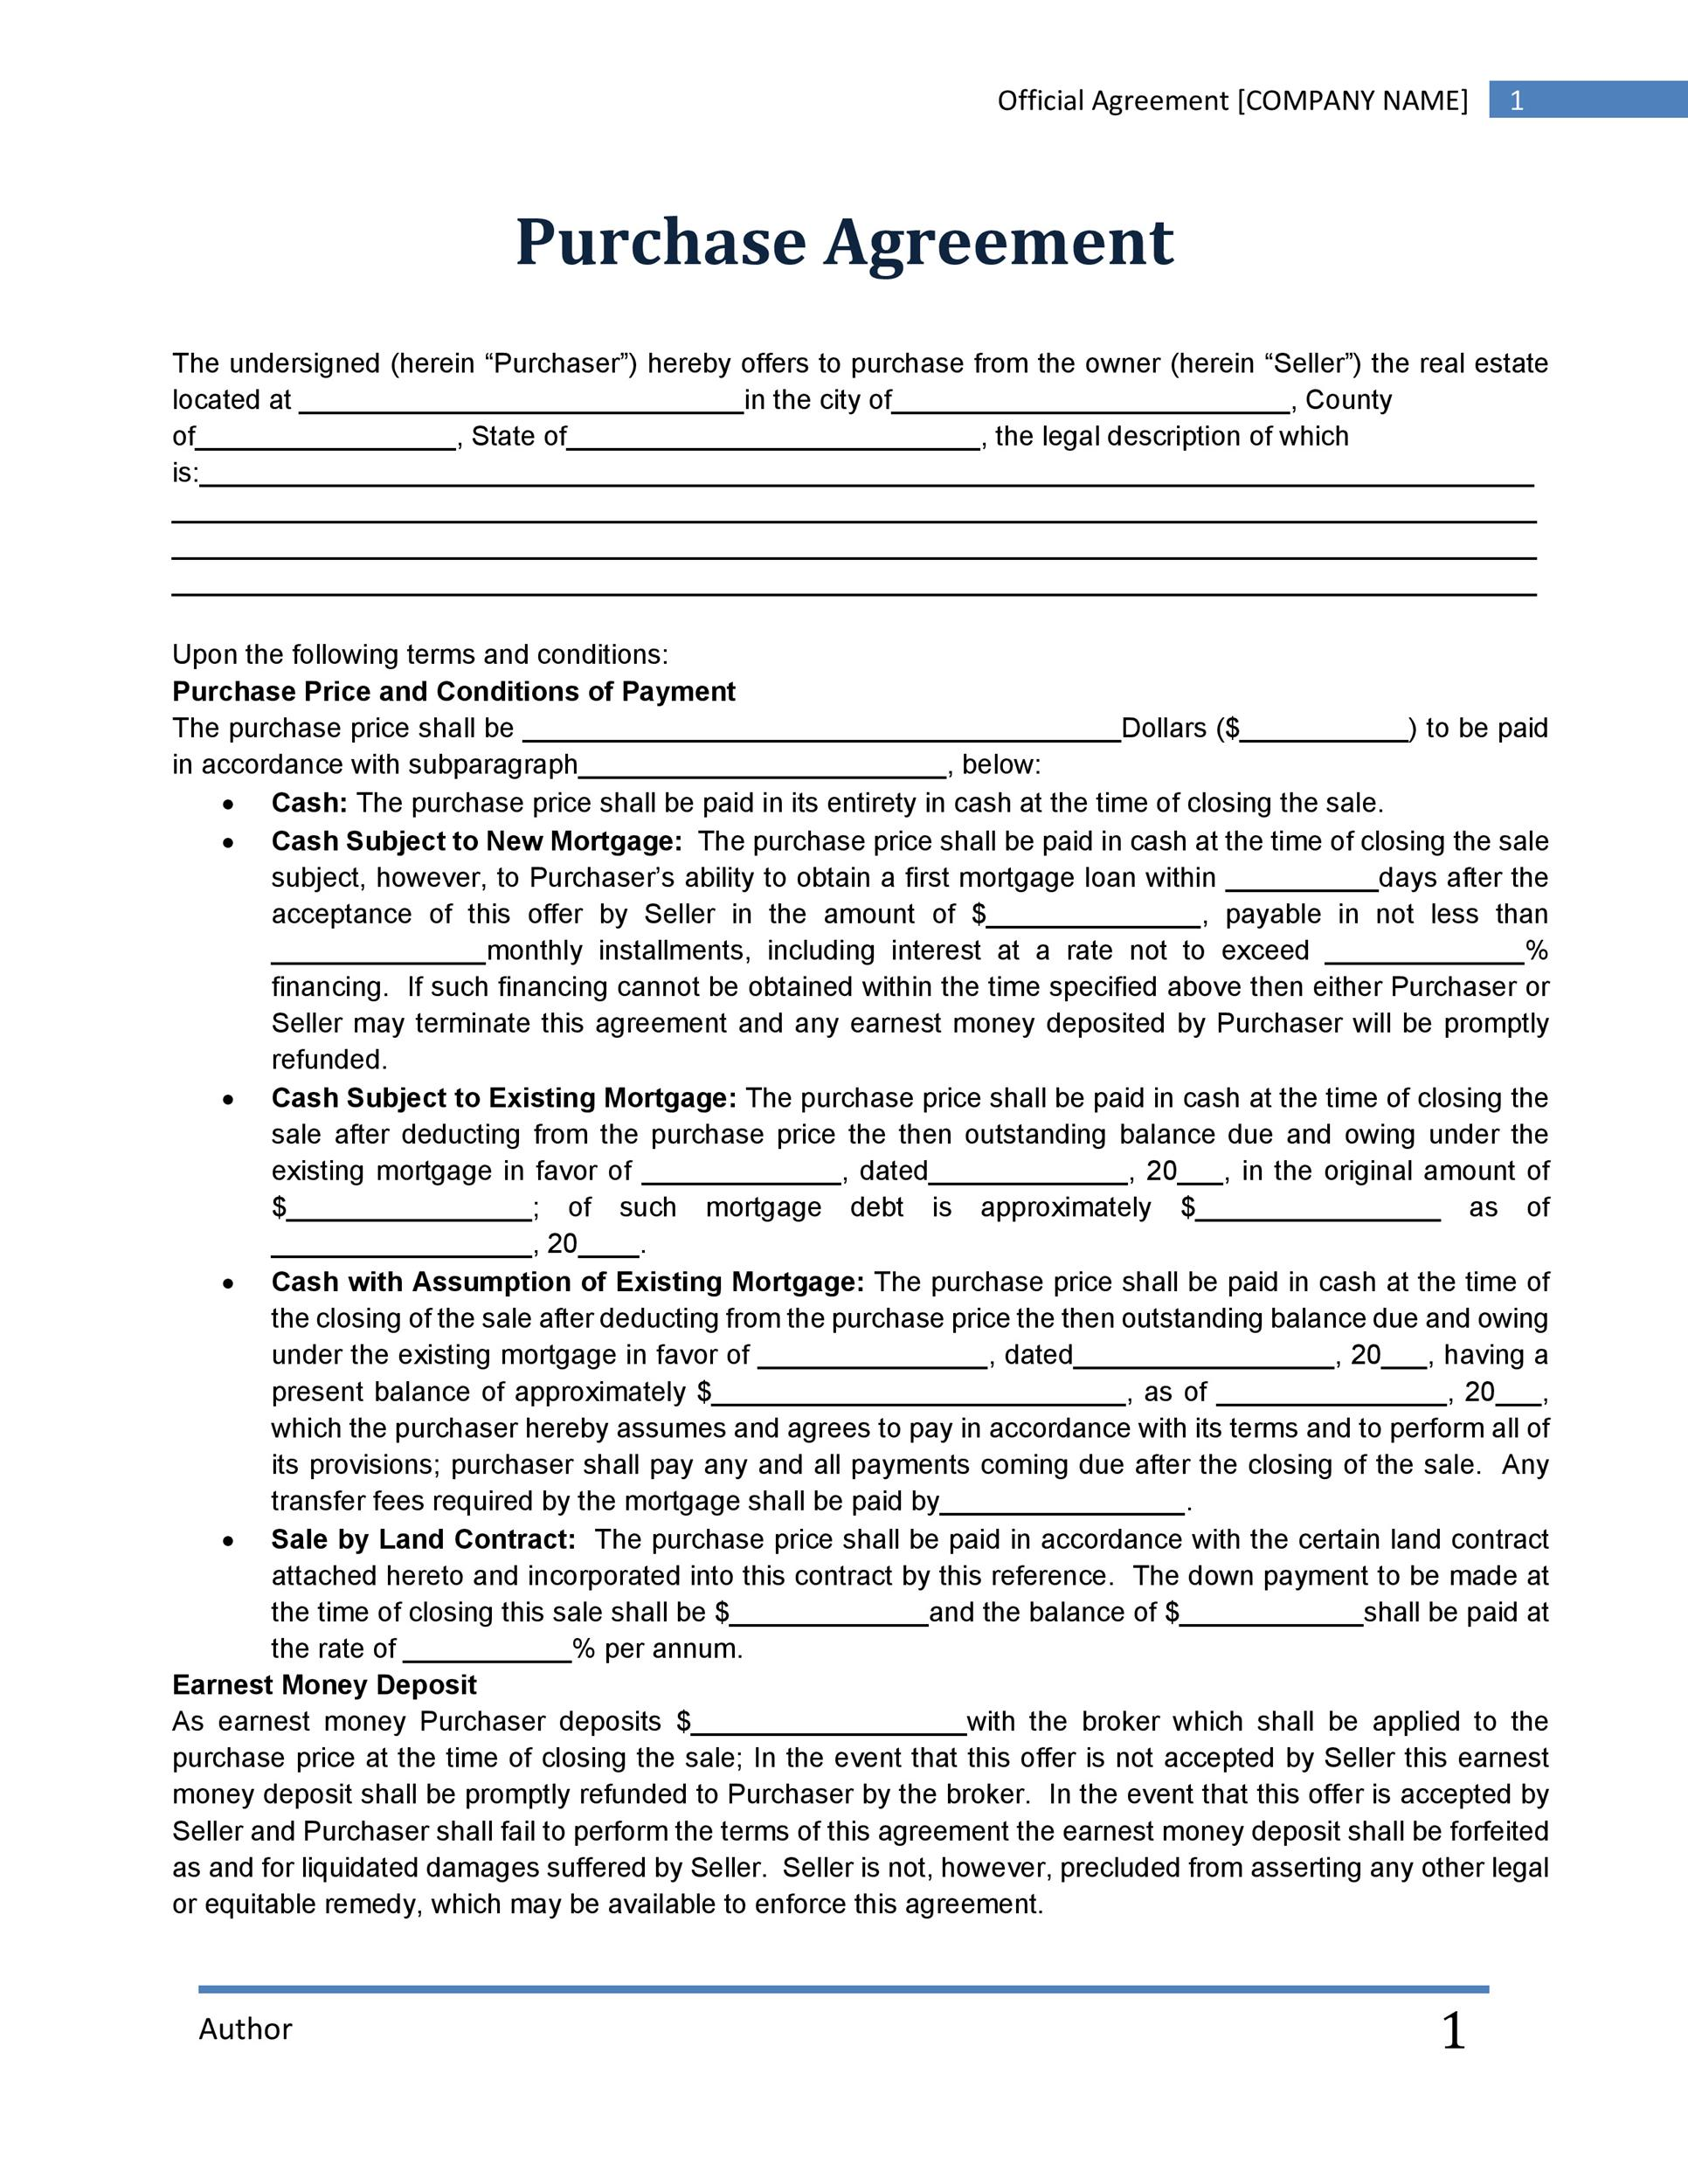 Free Purchase Agreement Template 05